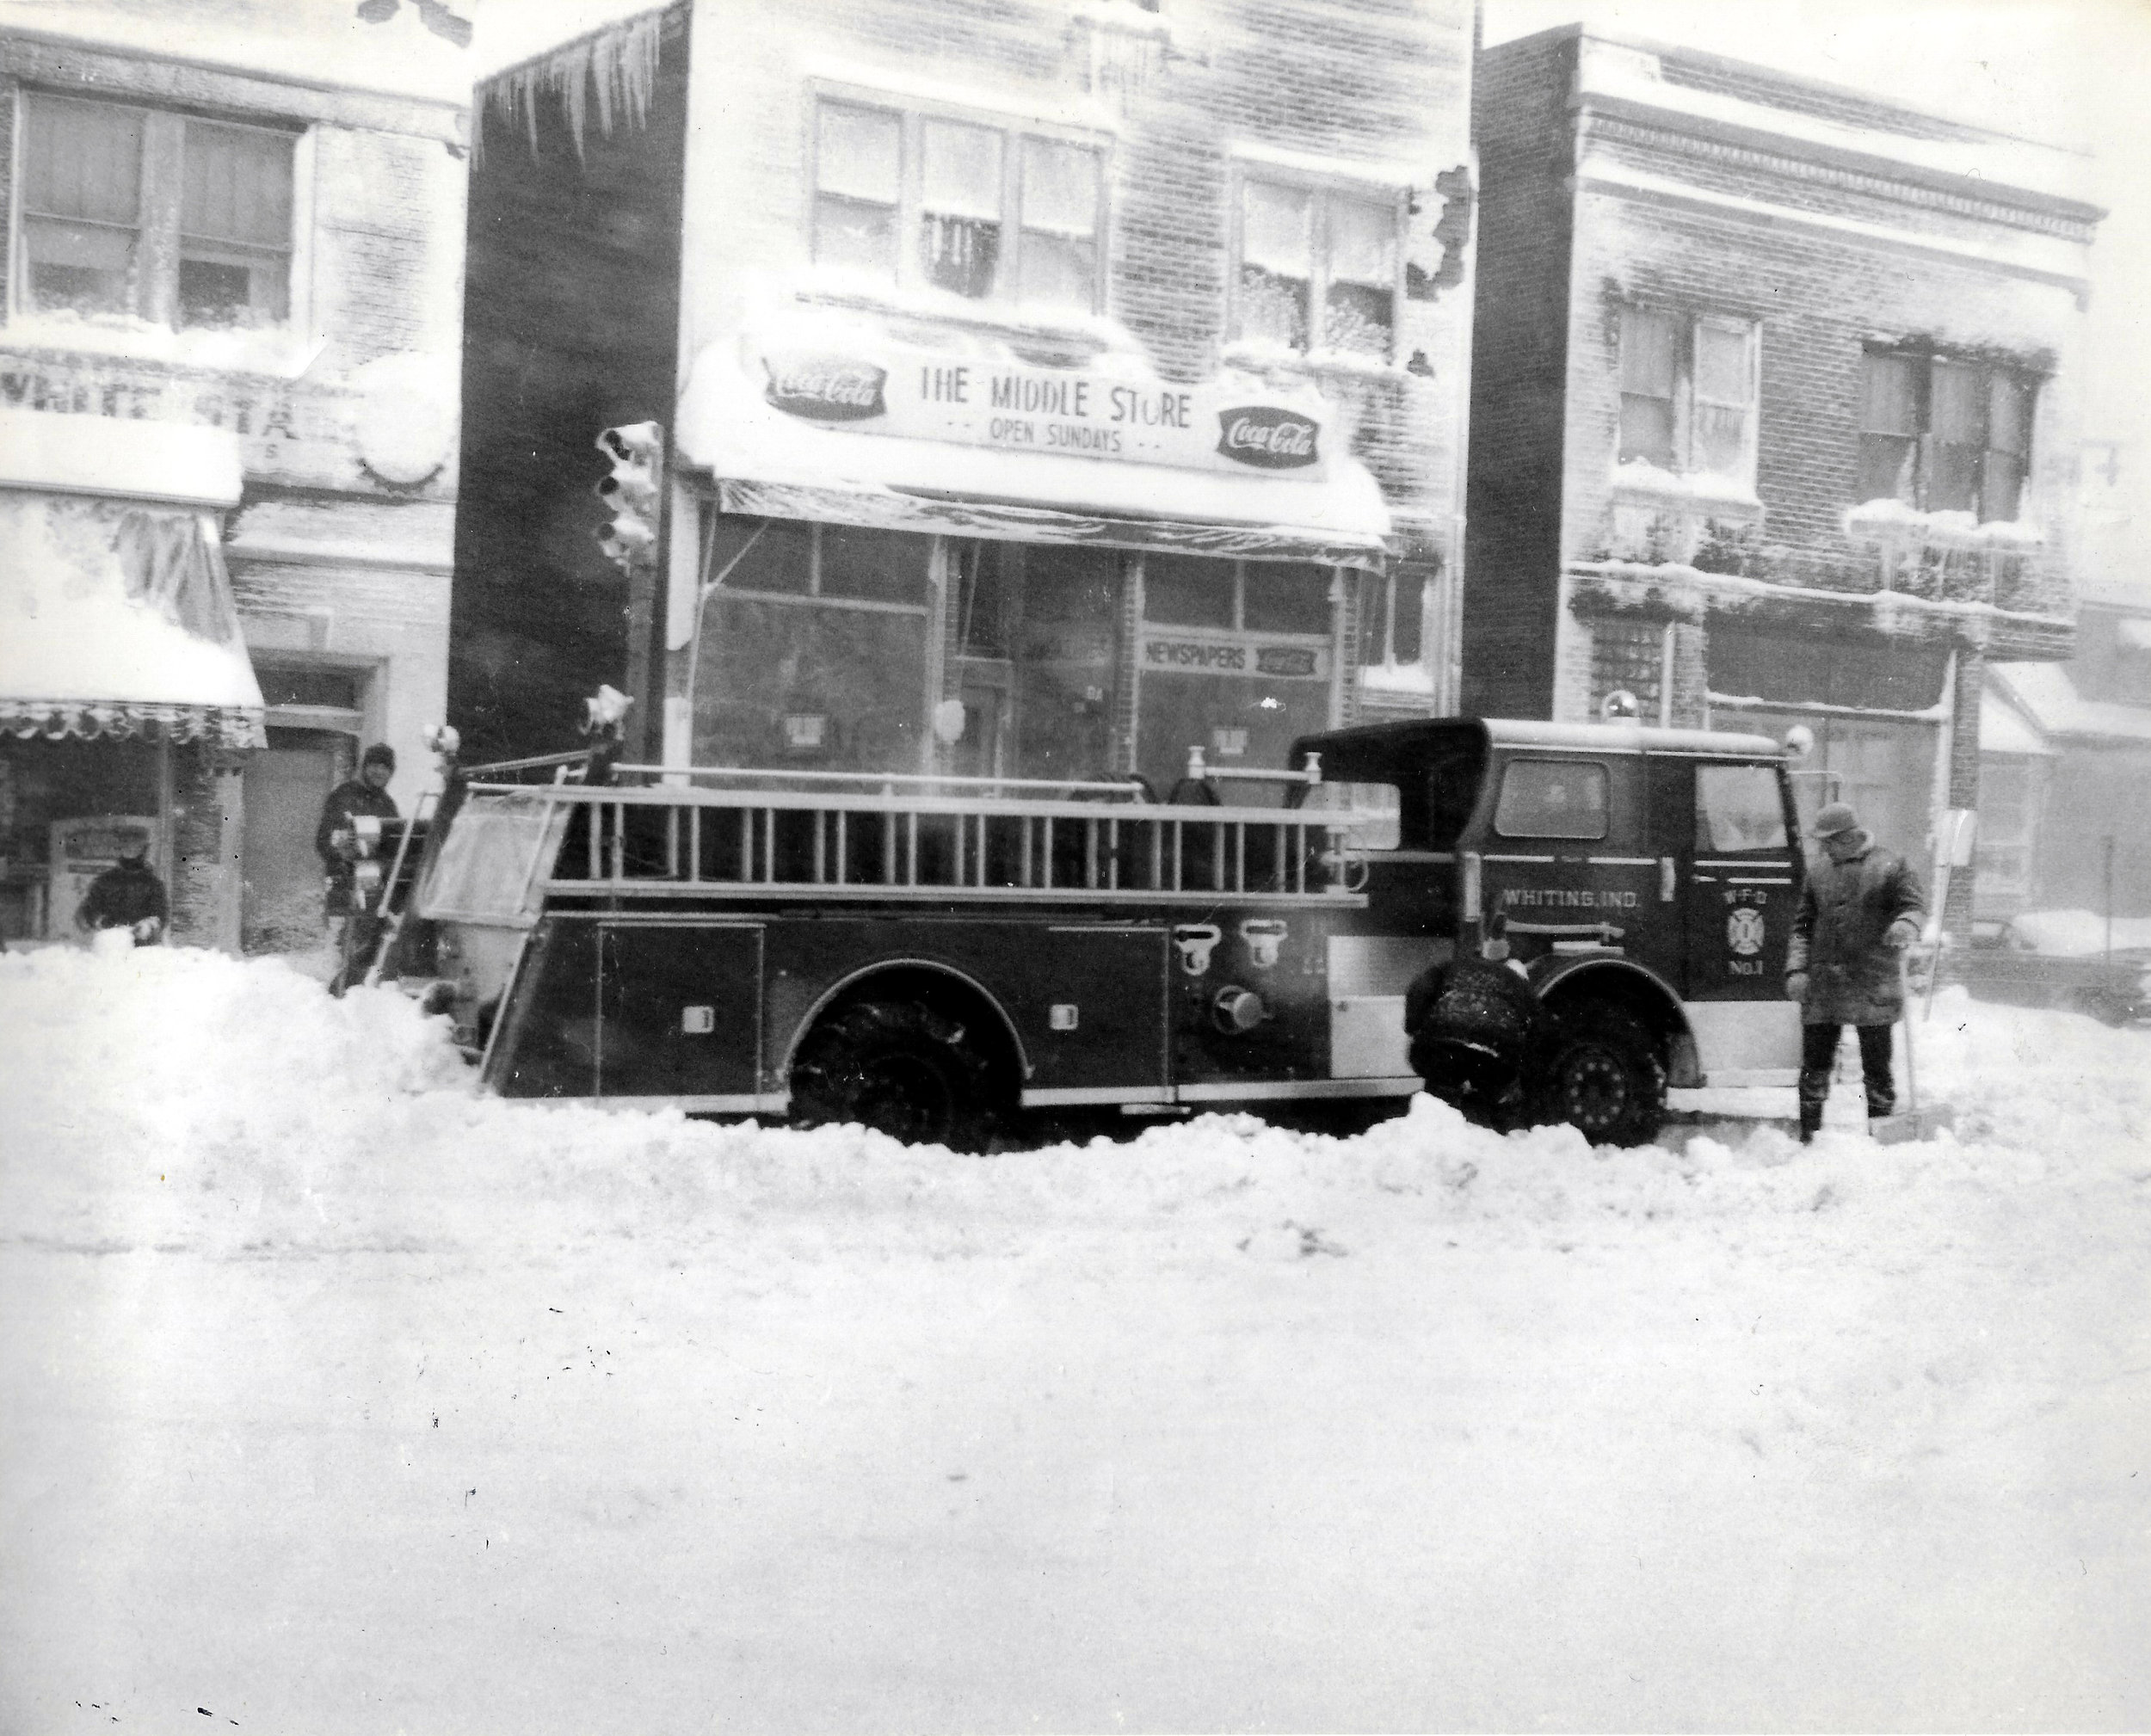 A Whiting fire truck deals with the snow on 121st Street, just east of Indianapolis Boulevard, while snow clings to the façade of the shops behind it.